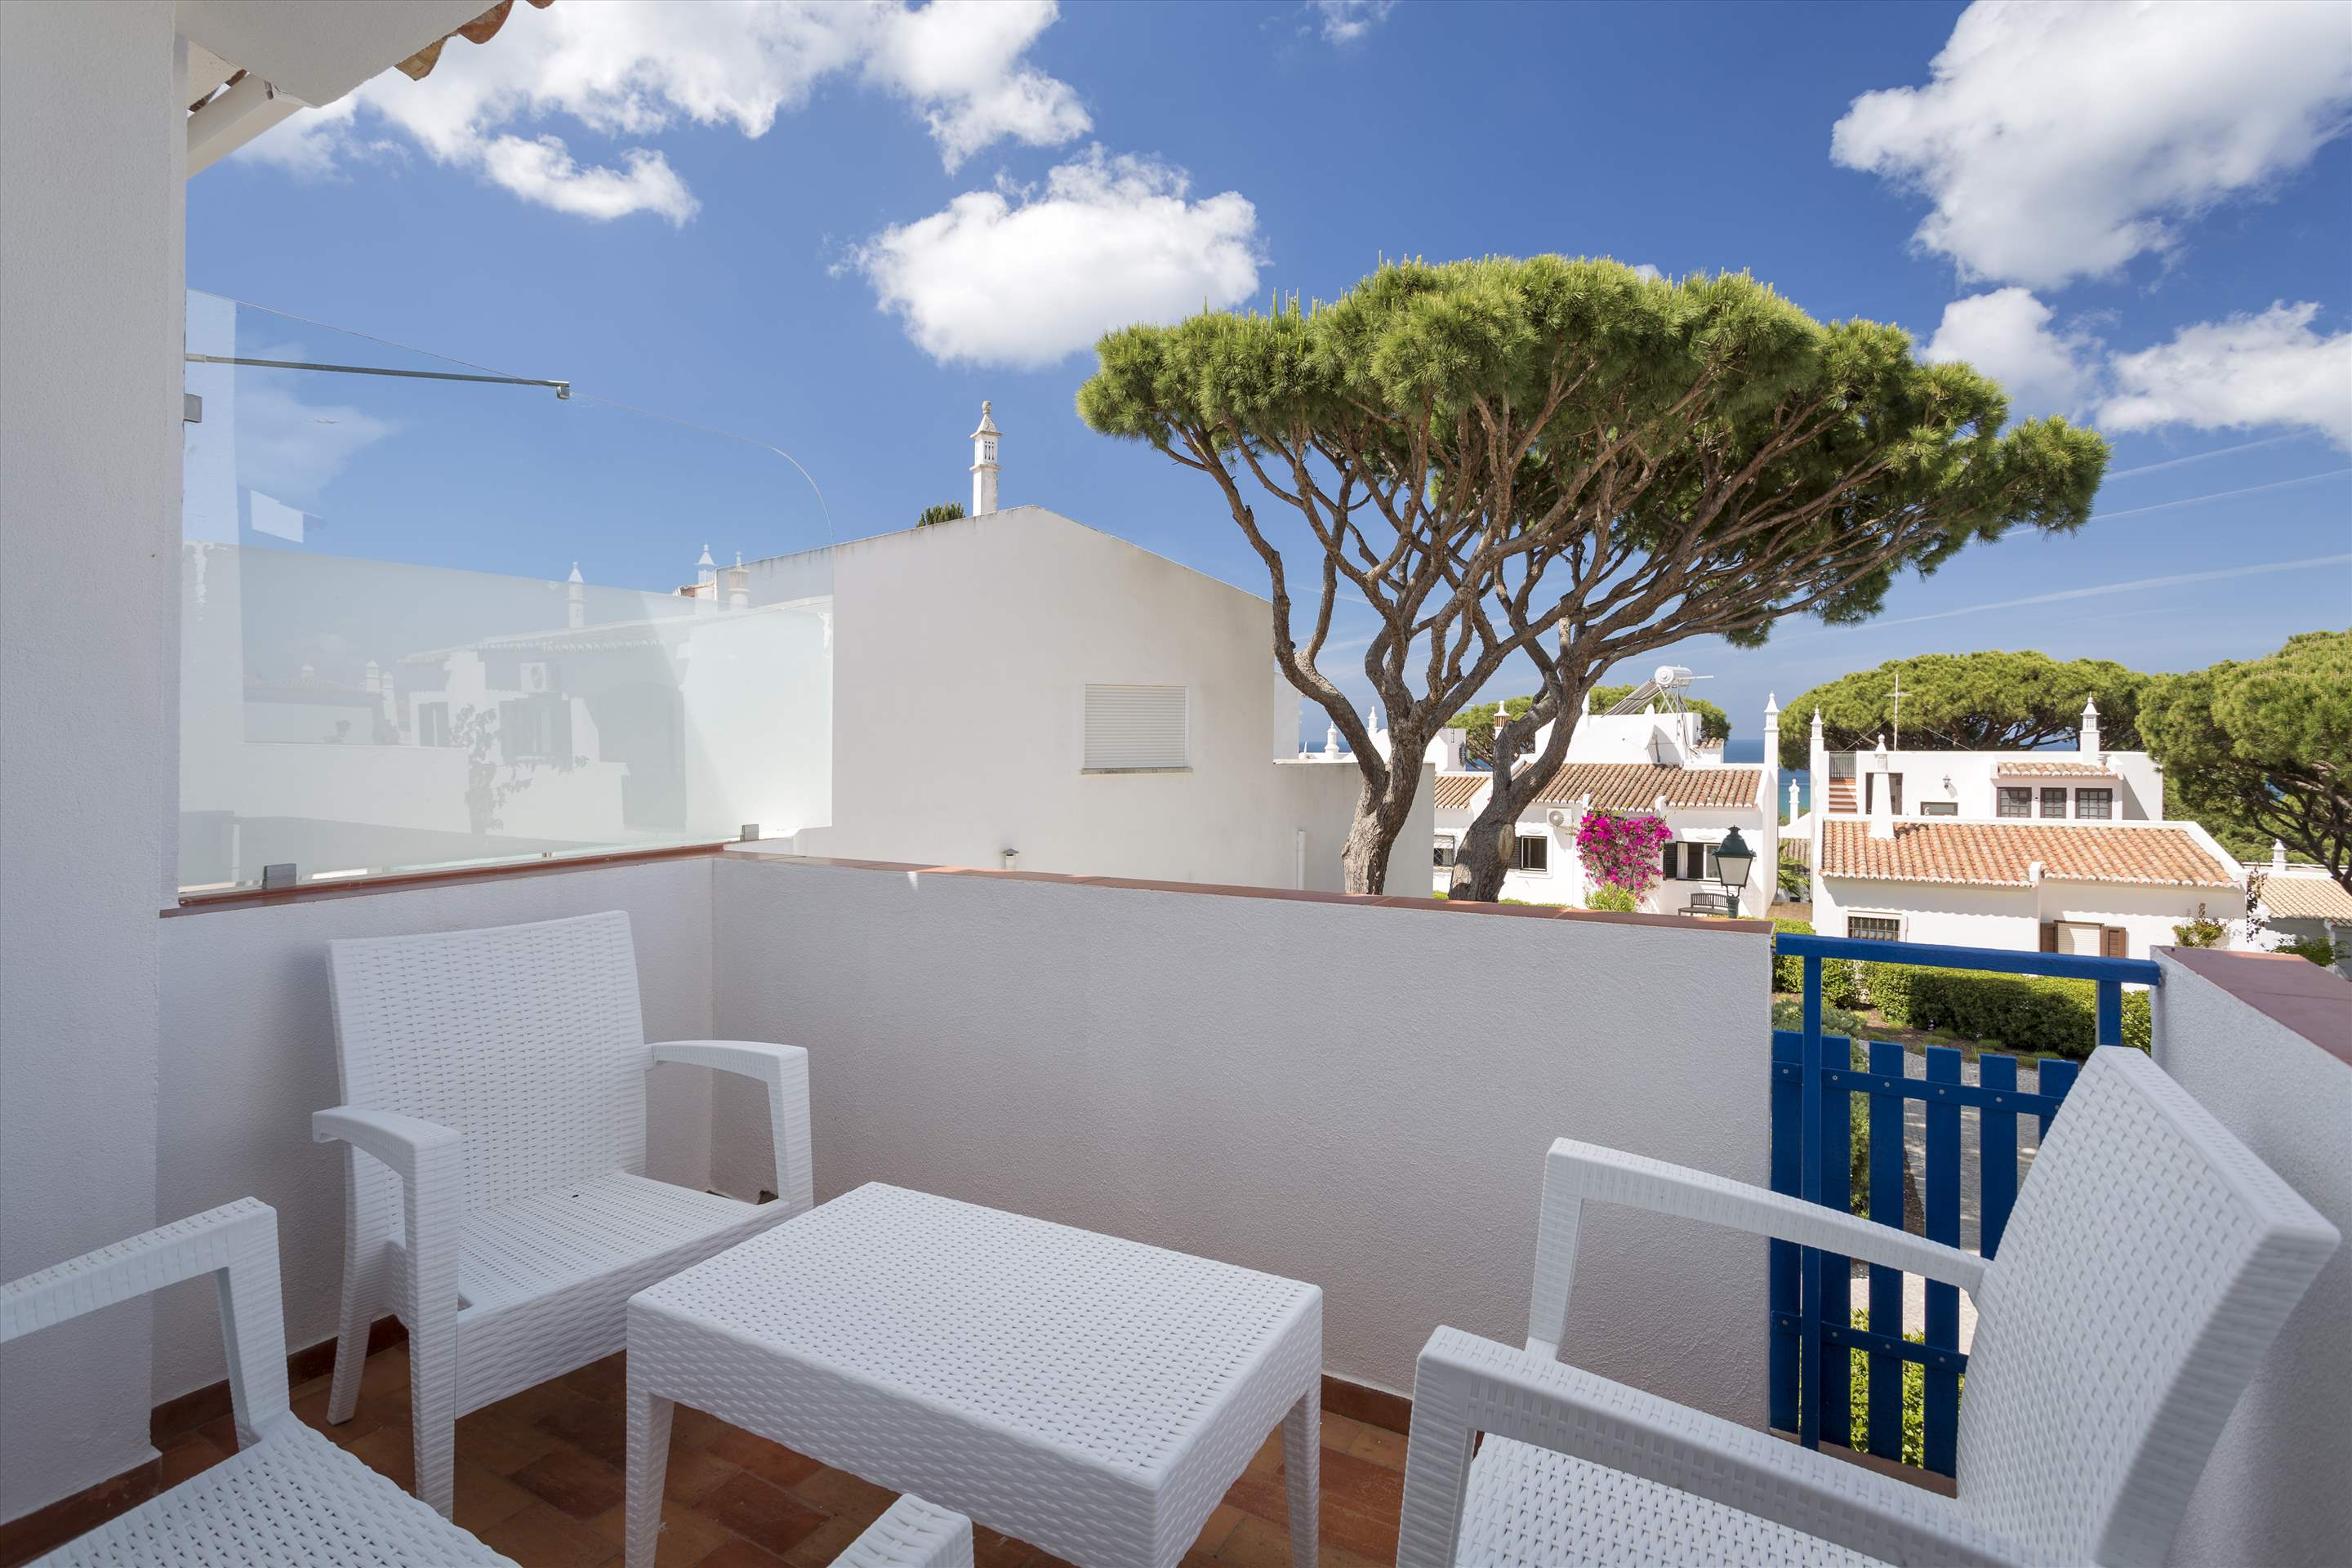 Townhouse Megan, 3 bedroom villa in Vale do Lobo, Algarve Photo #3